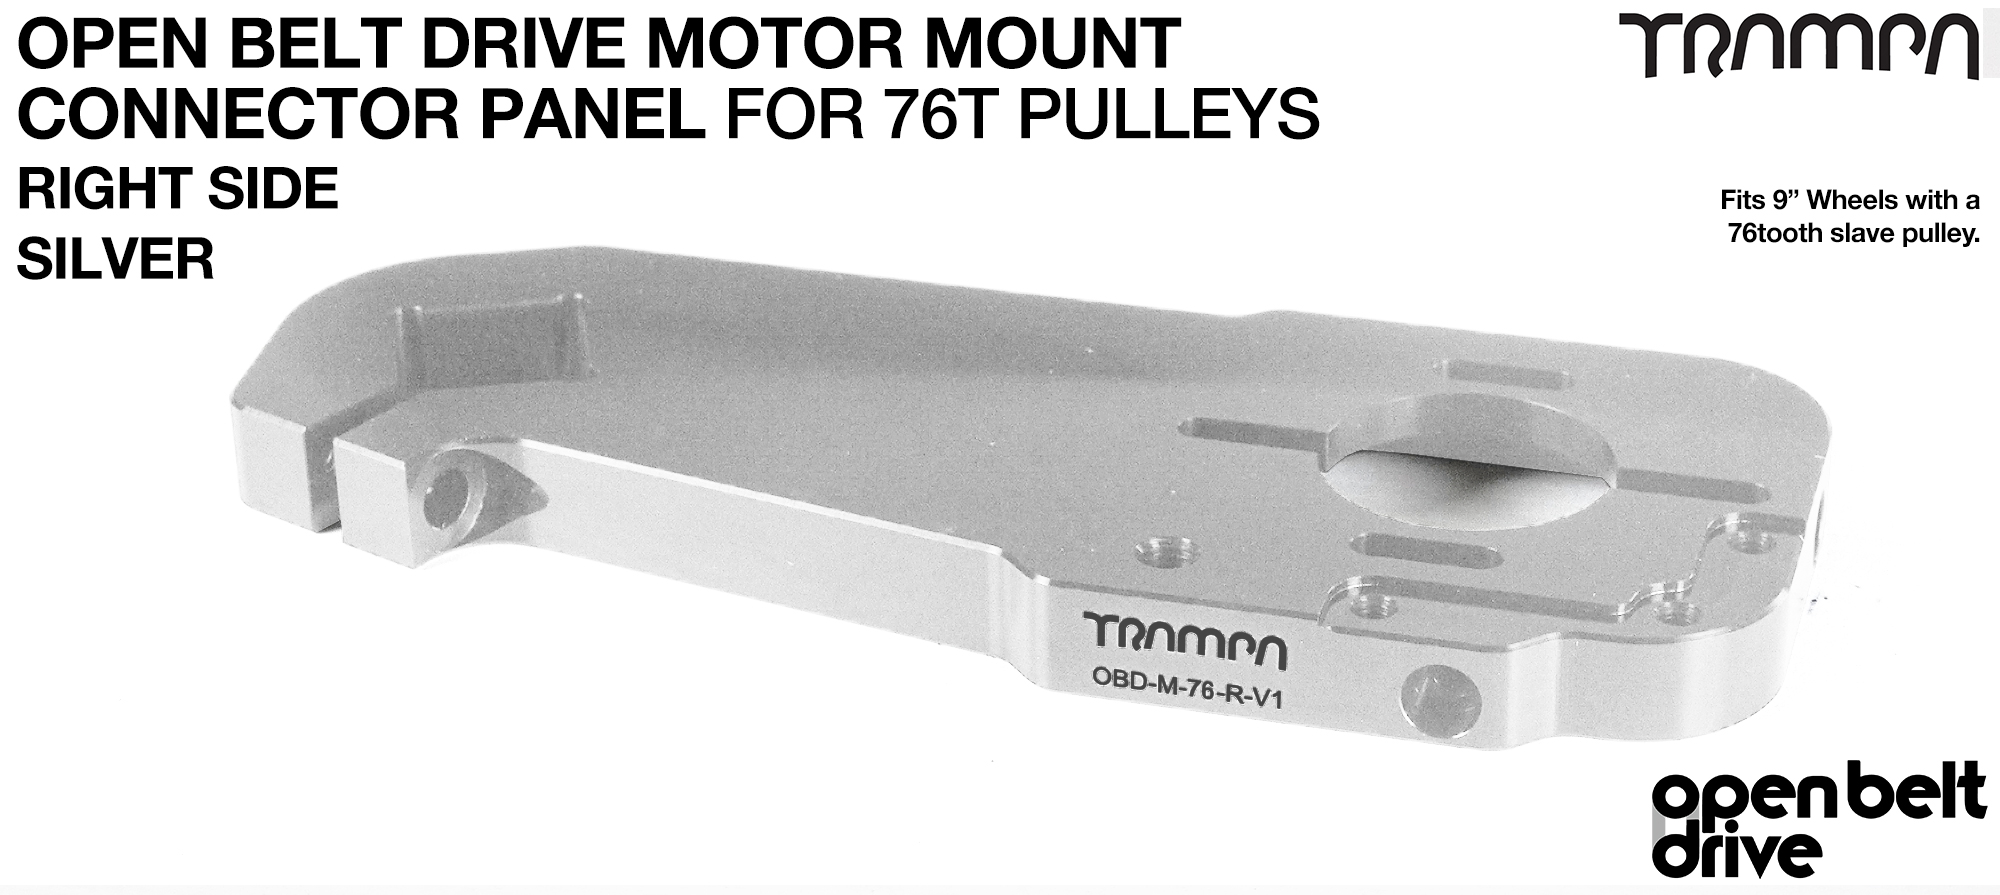 OBD Motor Mount Connector Panel for 76 tooth Pulleys - GOOFY - SILVER